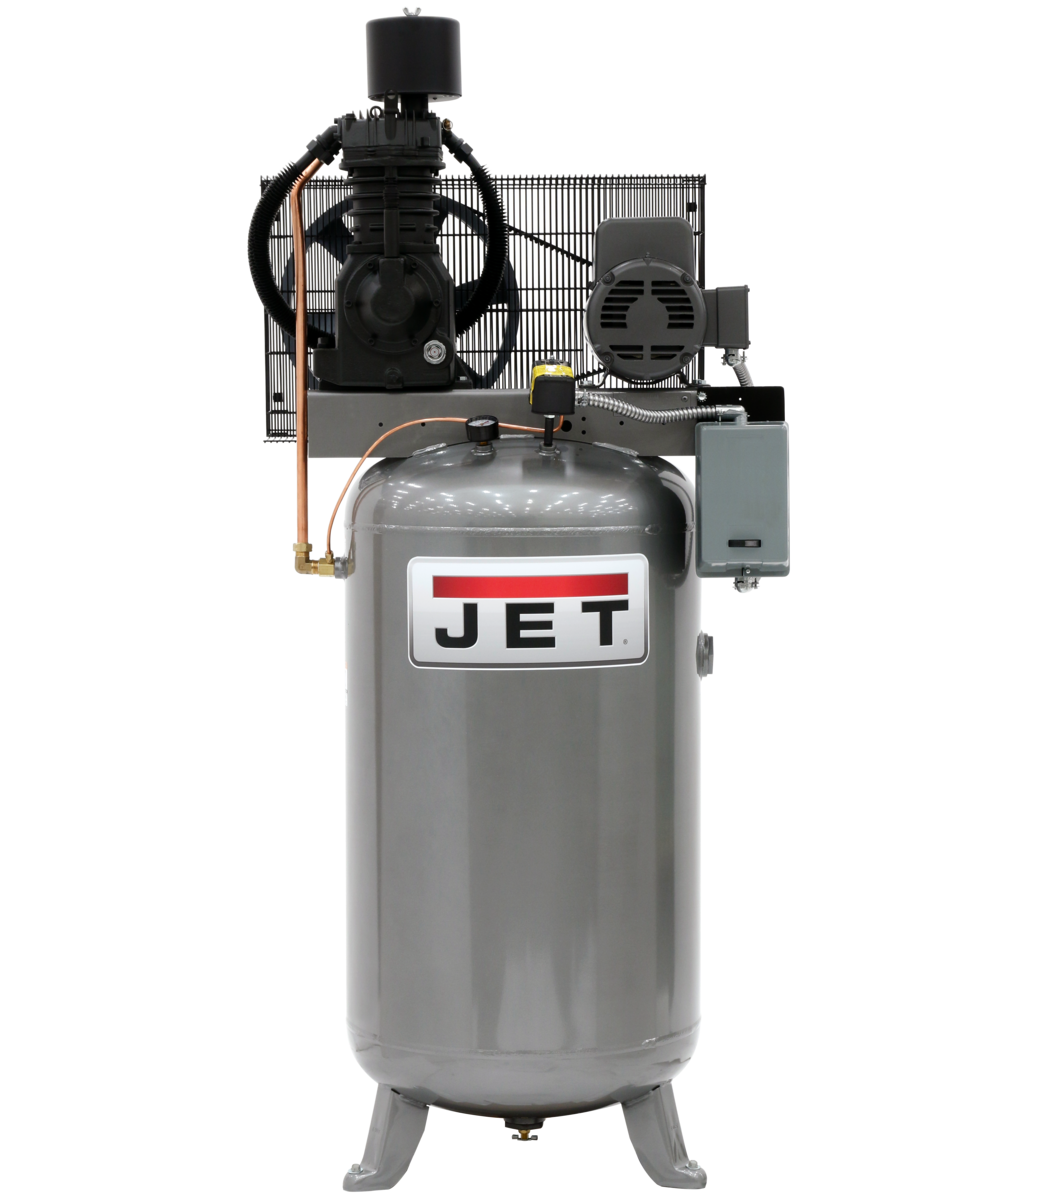 JCP-803, 80 Gallon Vertical Air Compressor